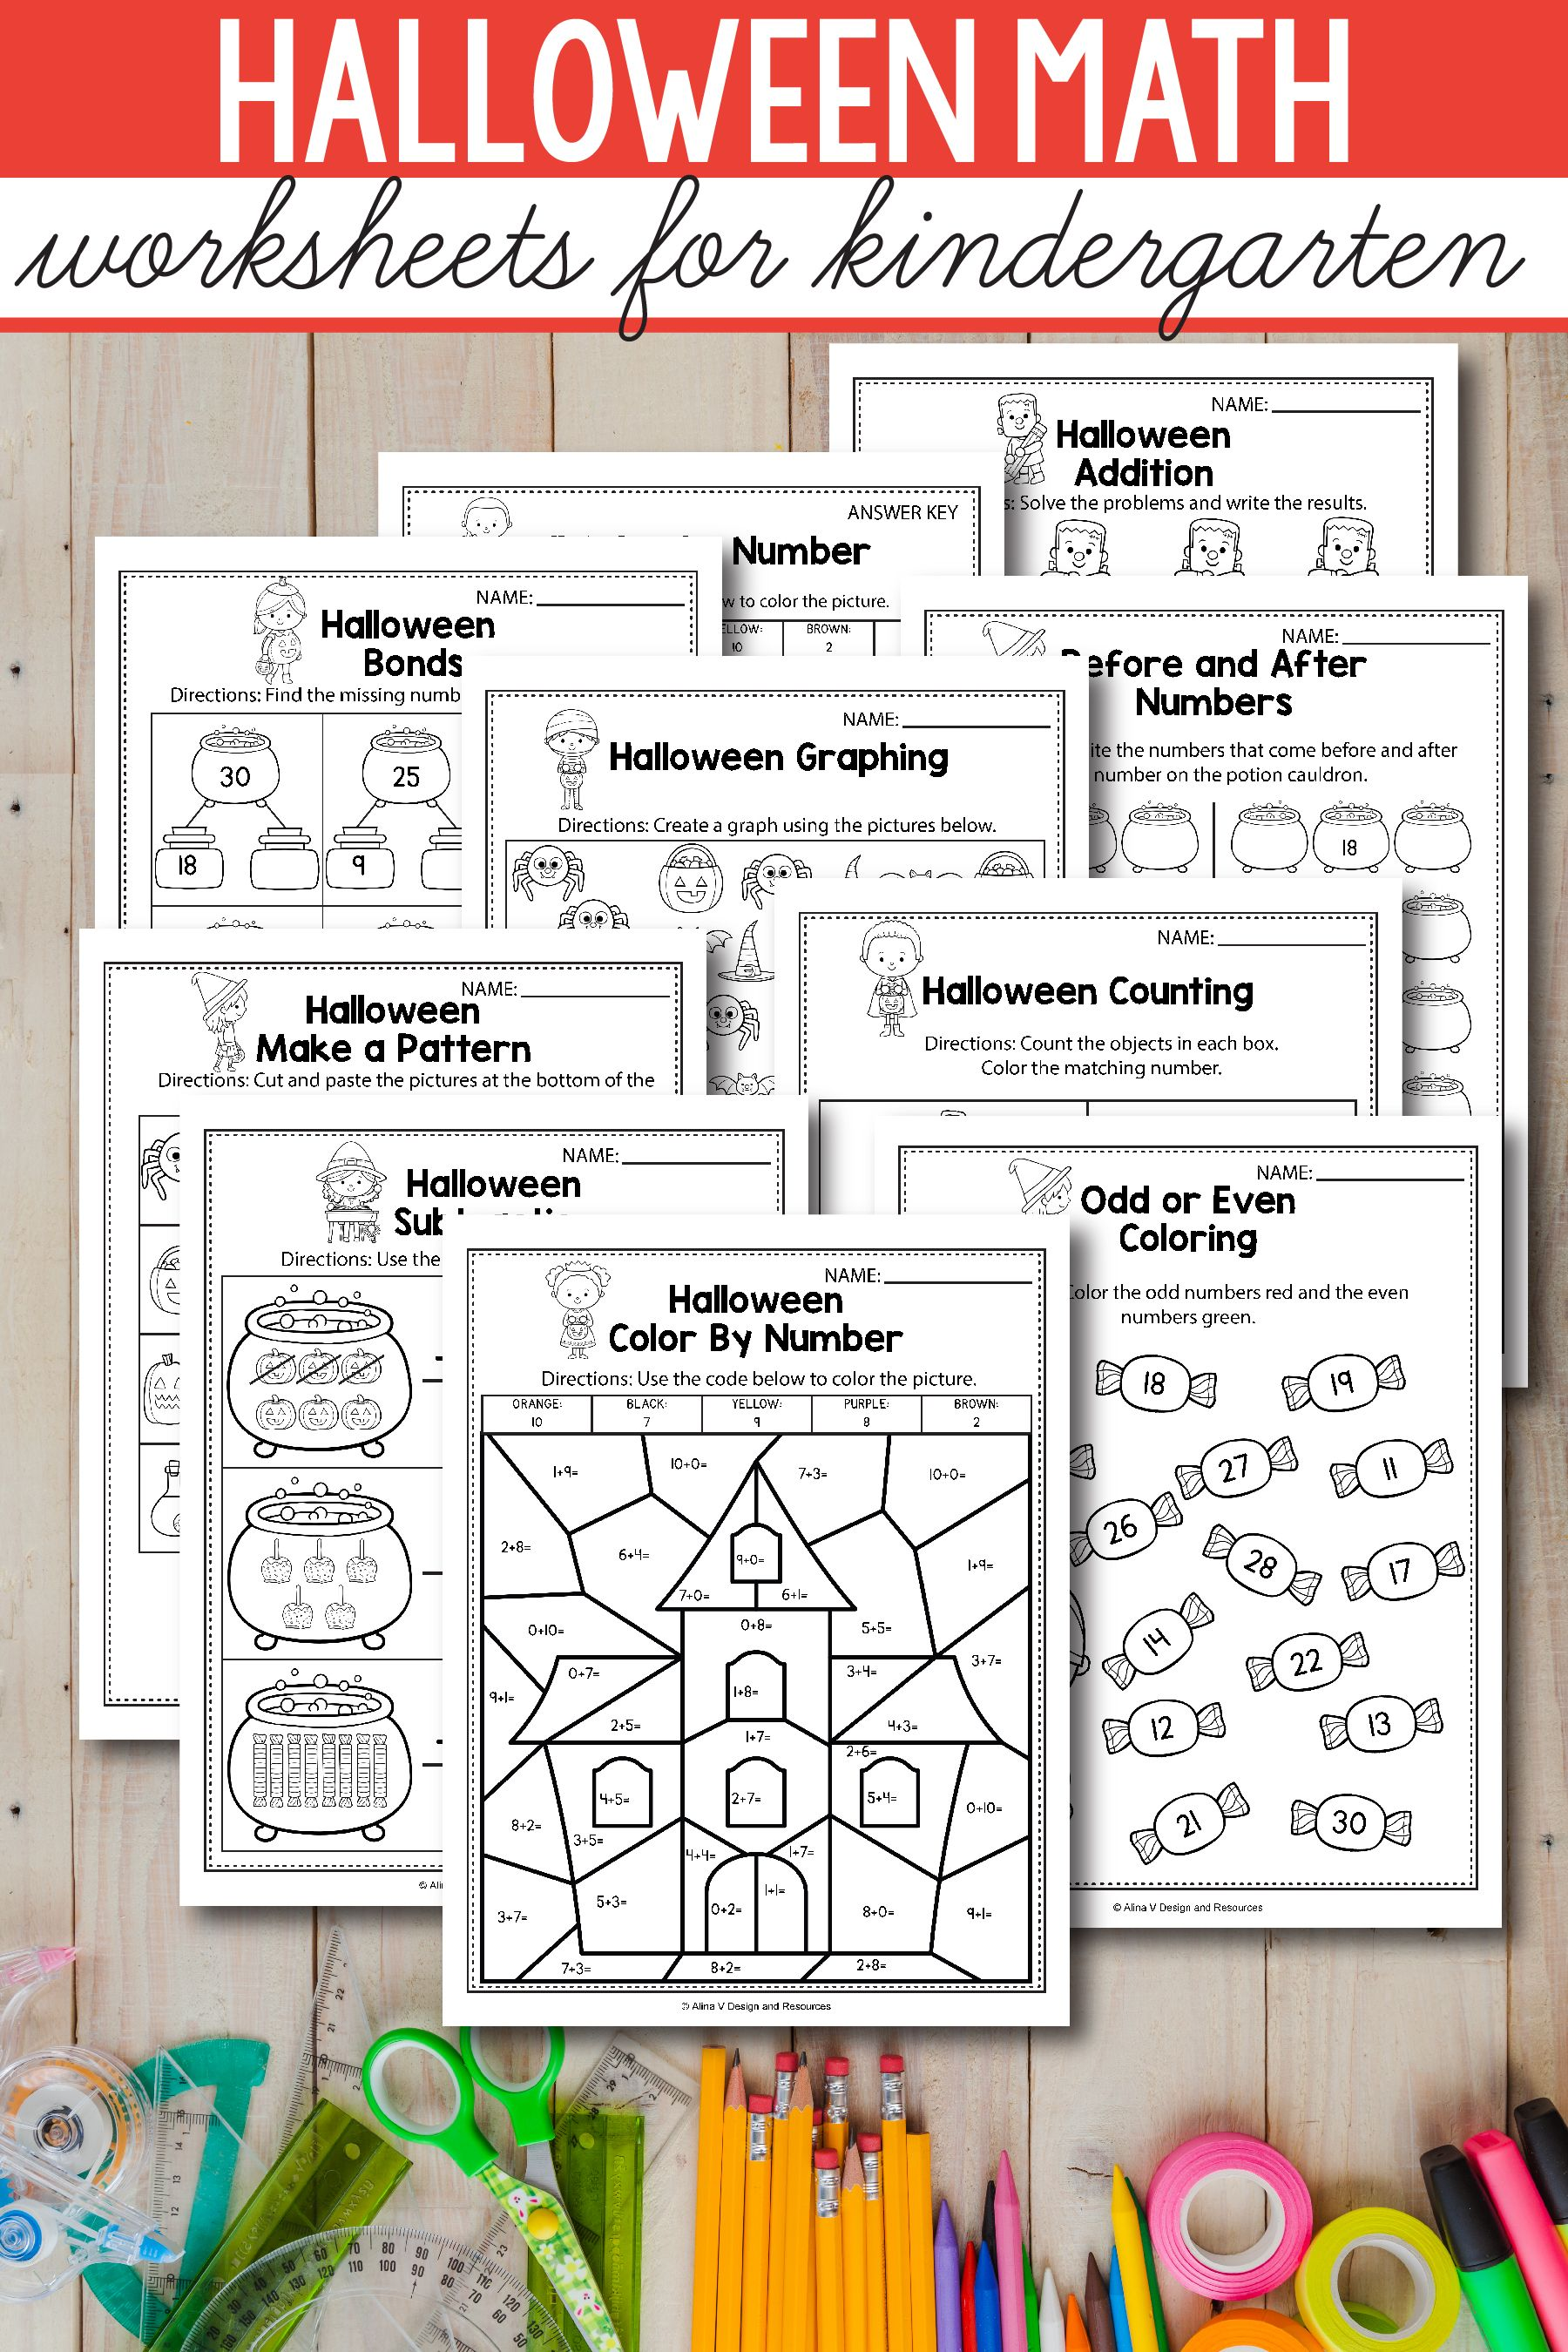 Halloween Math Activities For Kindergarten 1st Grade And Preschool Is Fun With This Common